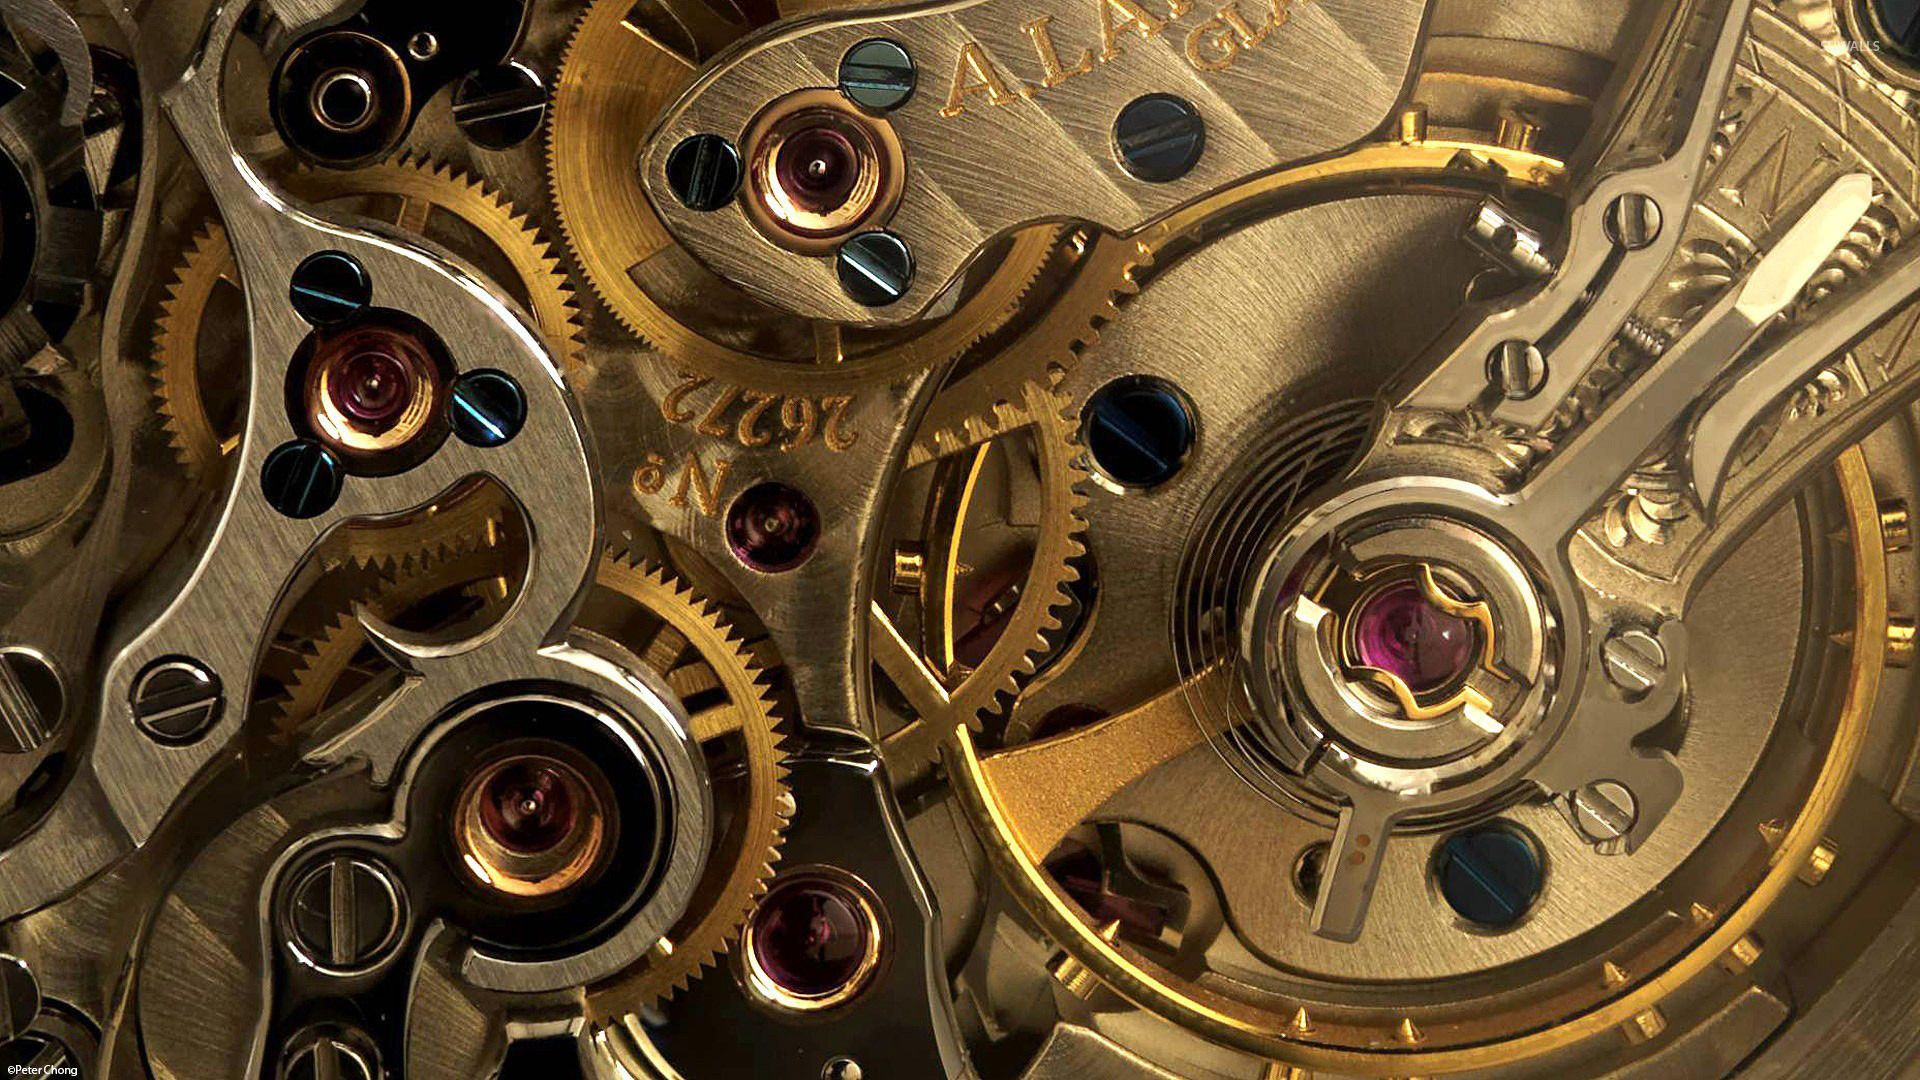 Hypno Clock Live Wallpaper Android Apps On Google Play Steampunk Wallpaper Steampunk Gears Steampunk Door